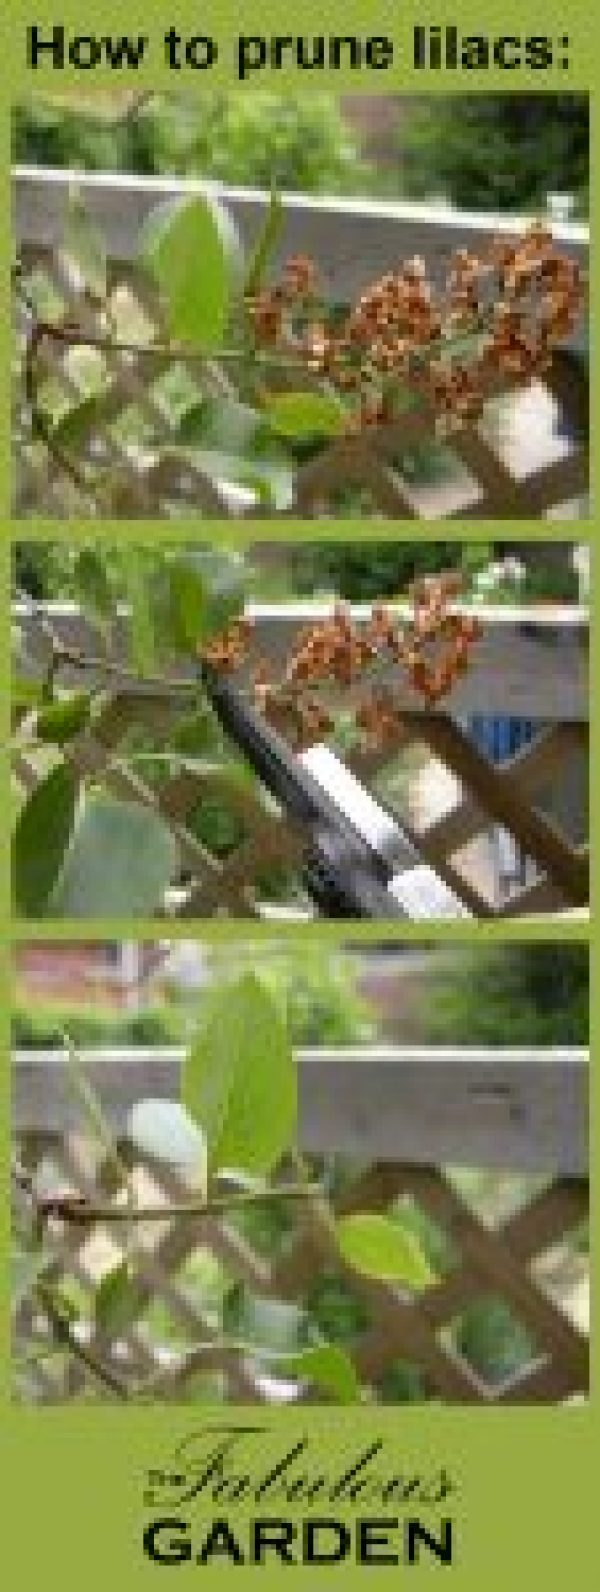 How to prune lilacs